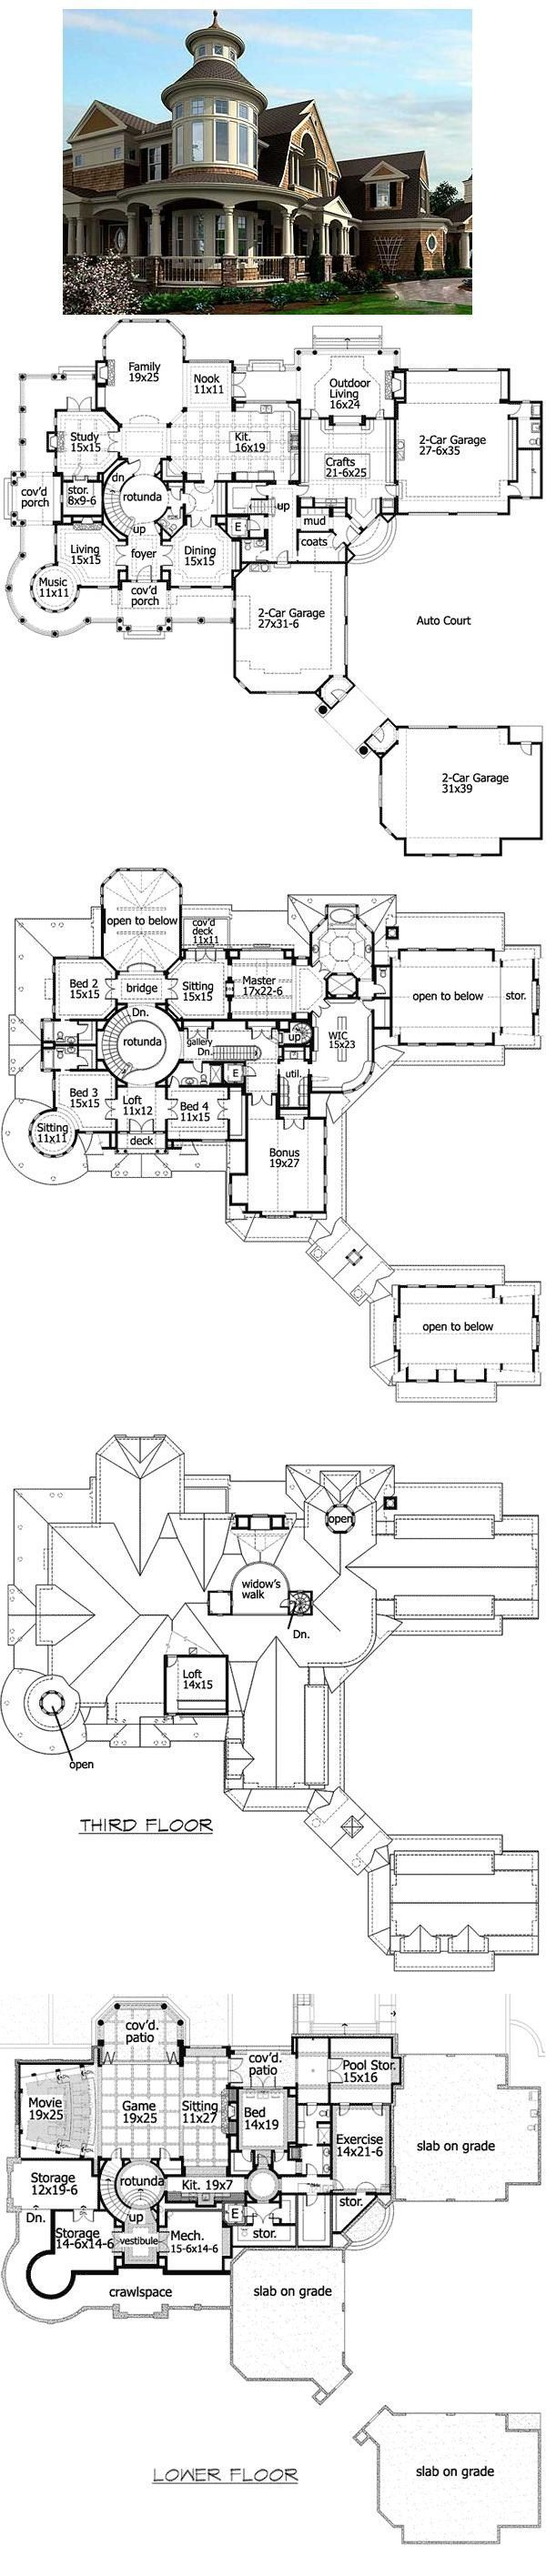 4c653e146dce3aadfbb23b135cf6adc1jpg 6002832 floor plans with craft roomlarge - Large House Plans